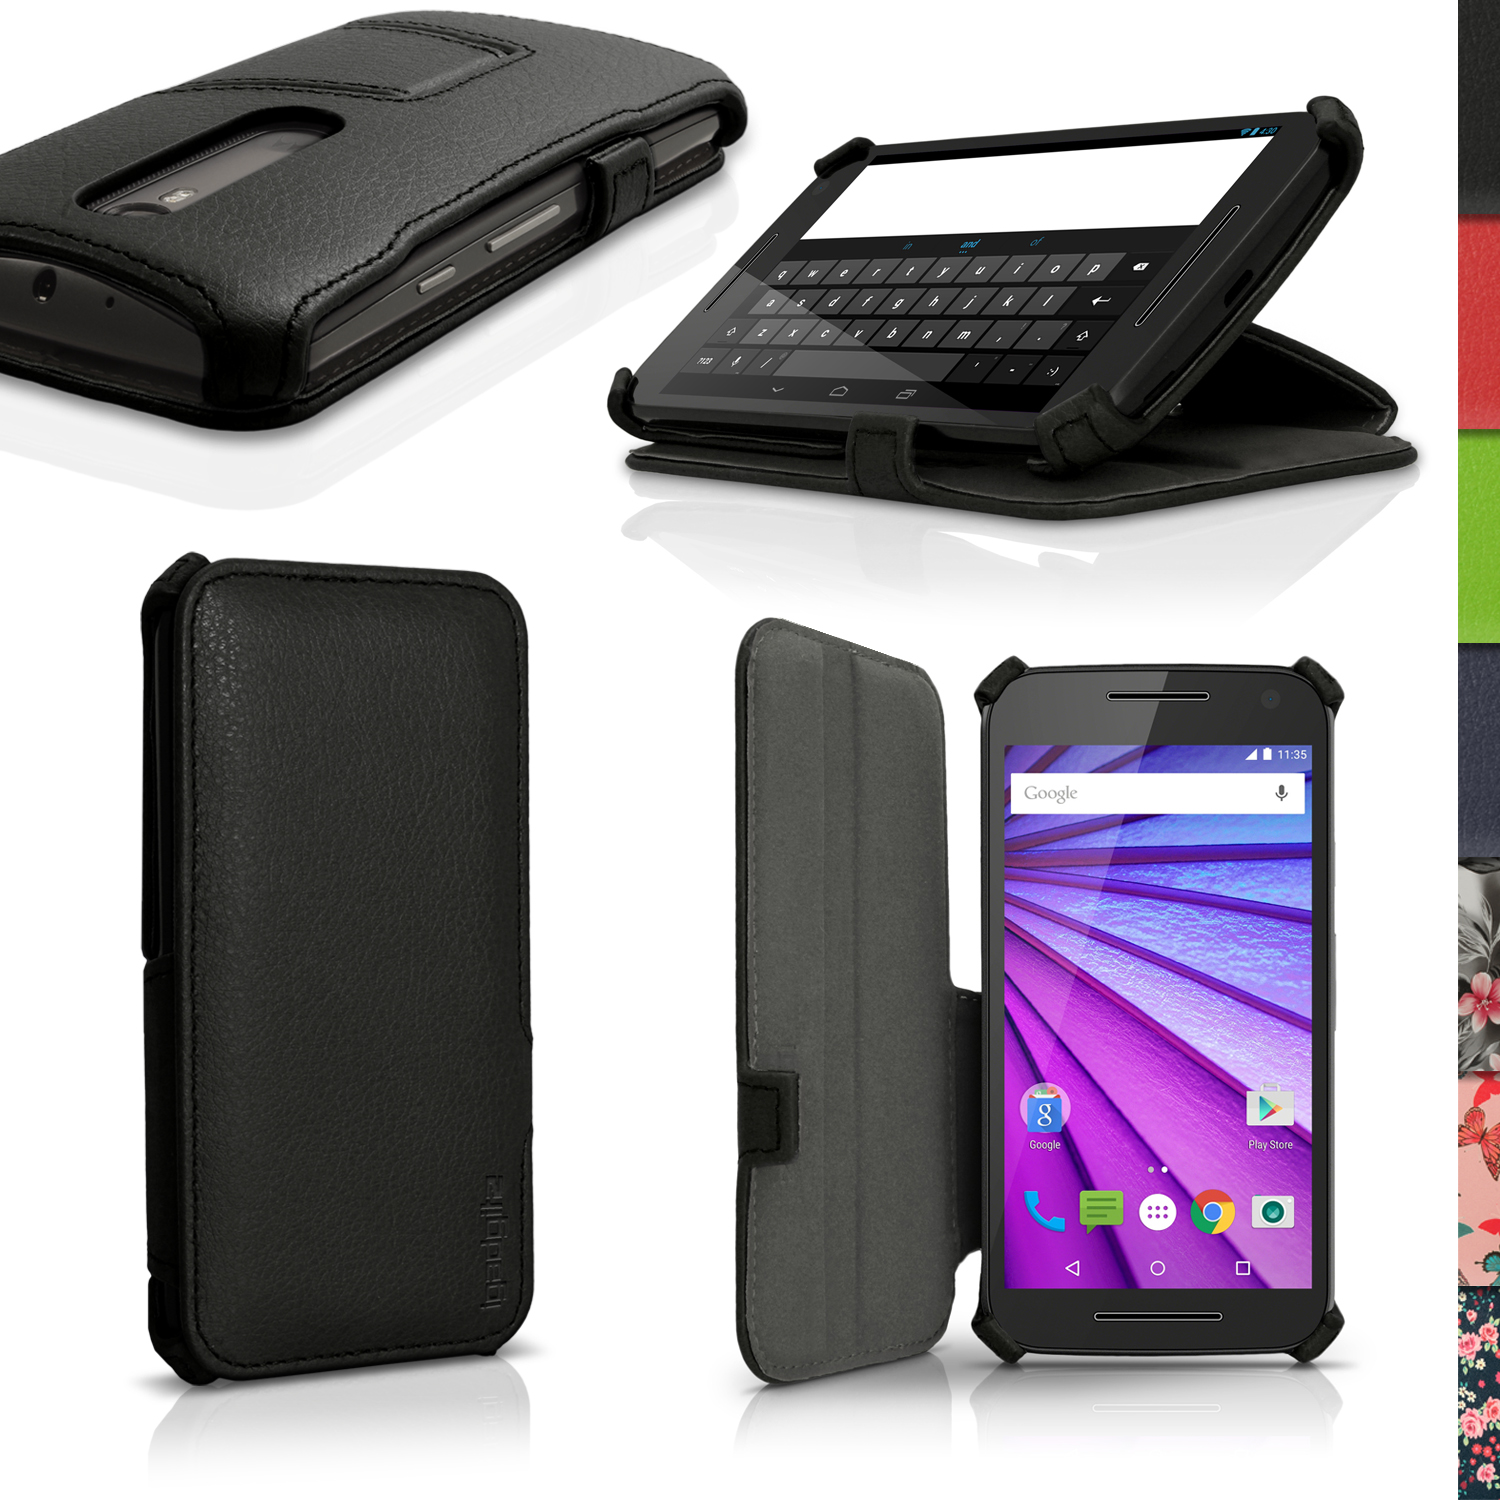 iGadgitz PU Leather Case Cover for Motorola Moto G 3rd Generation  XT1540 + Stand + Auto Sleep Wake + Screen Protector